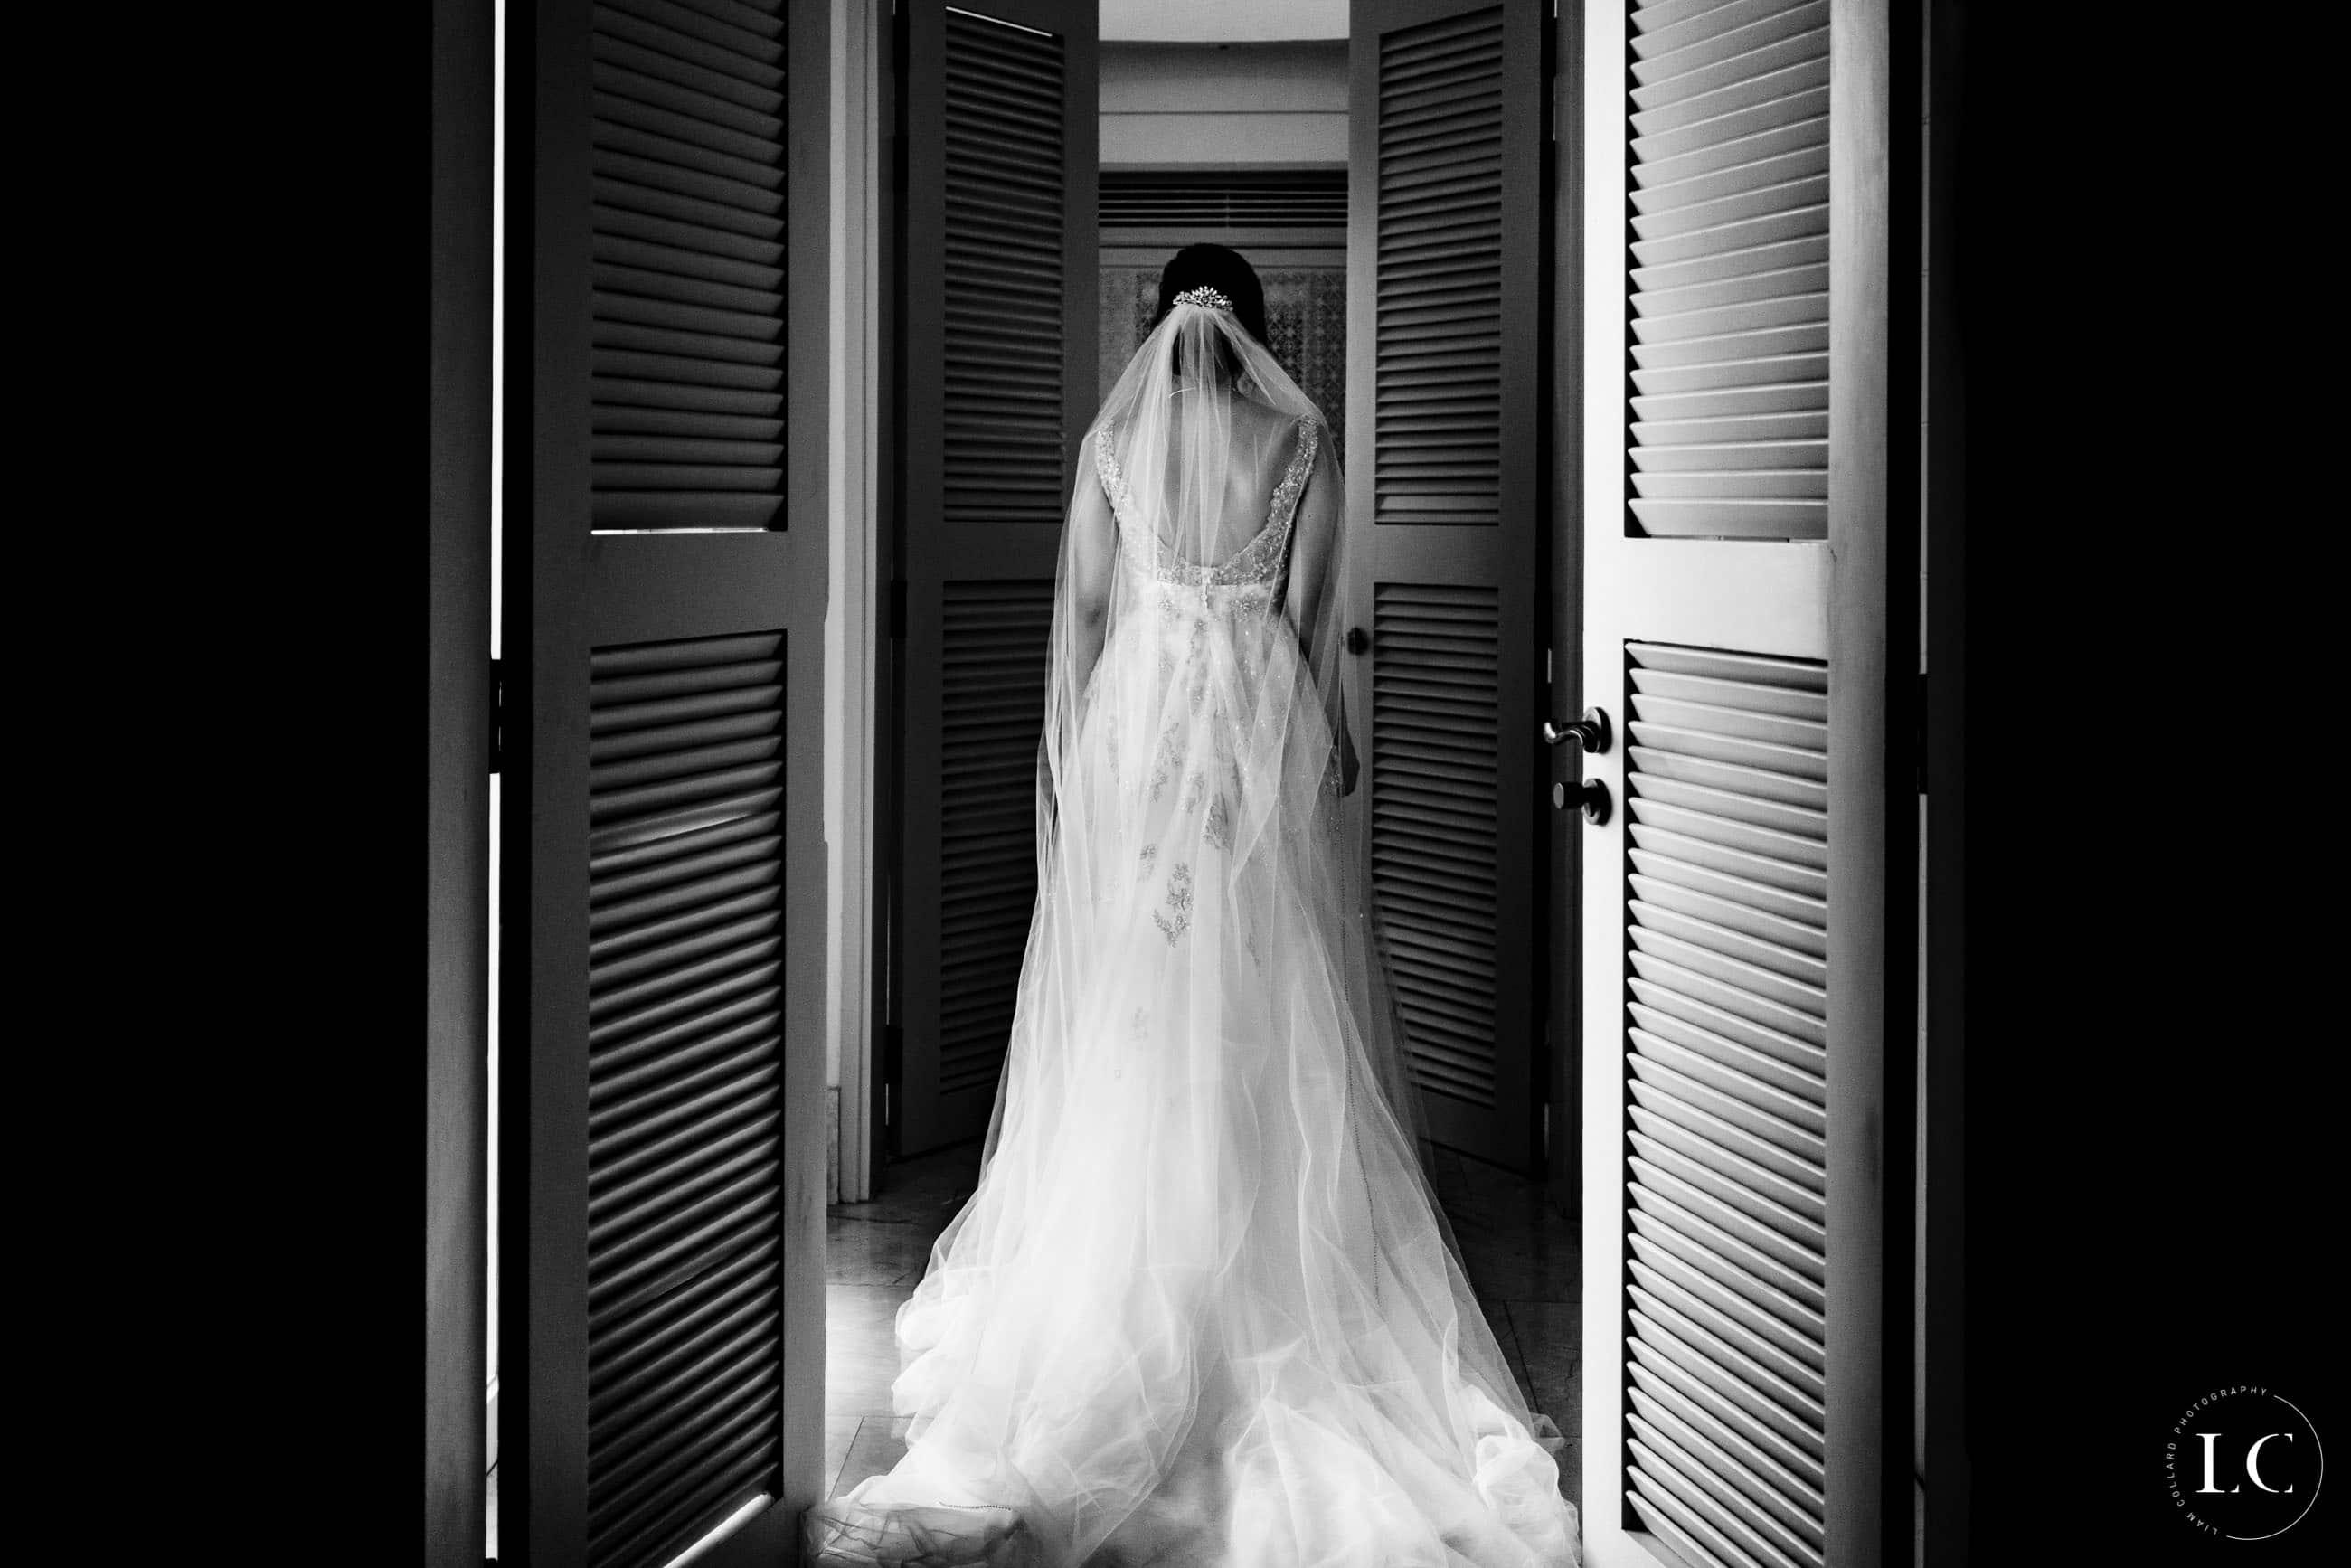 Bride in wedding dress from the back